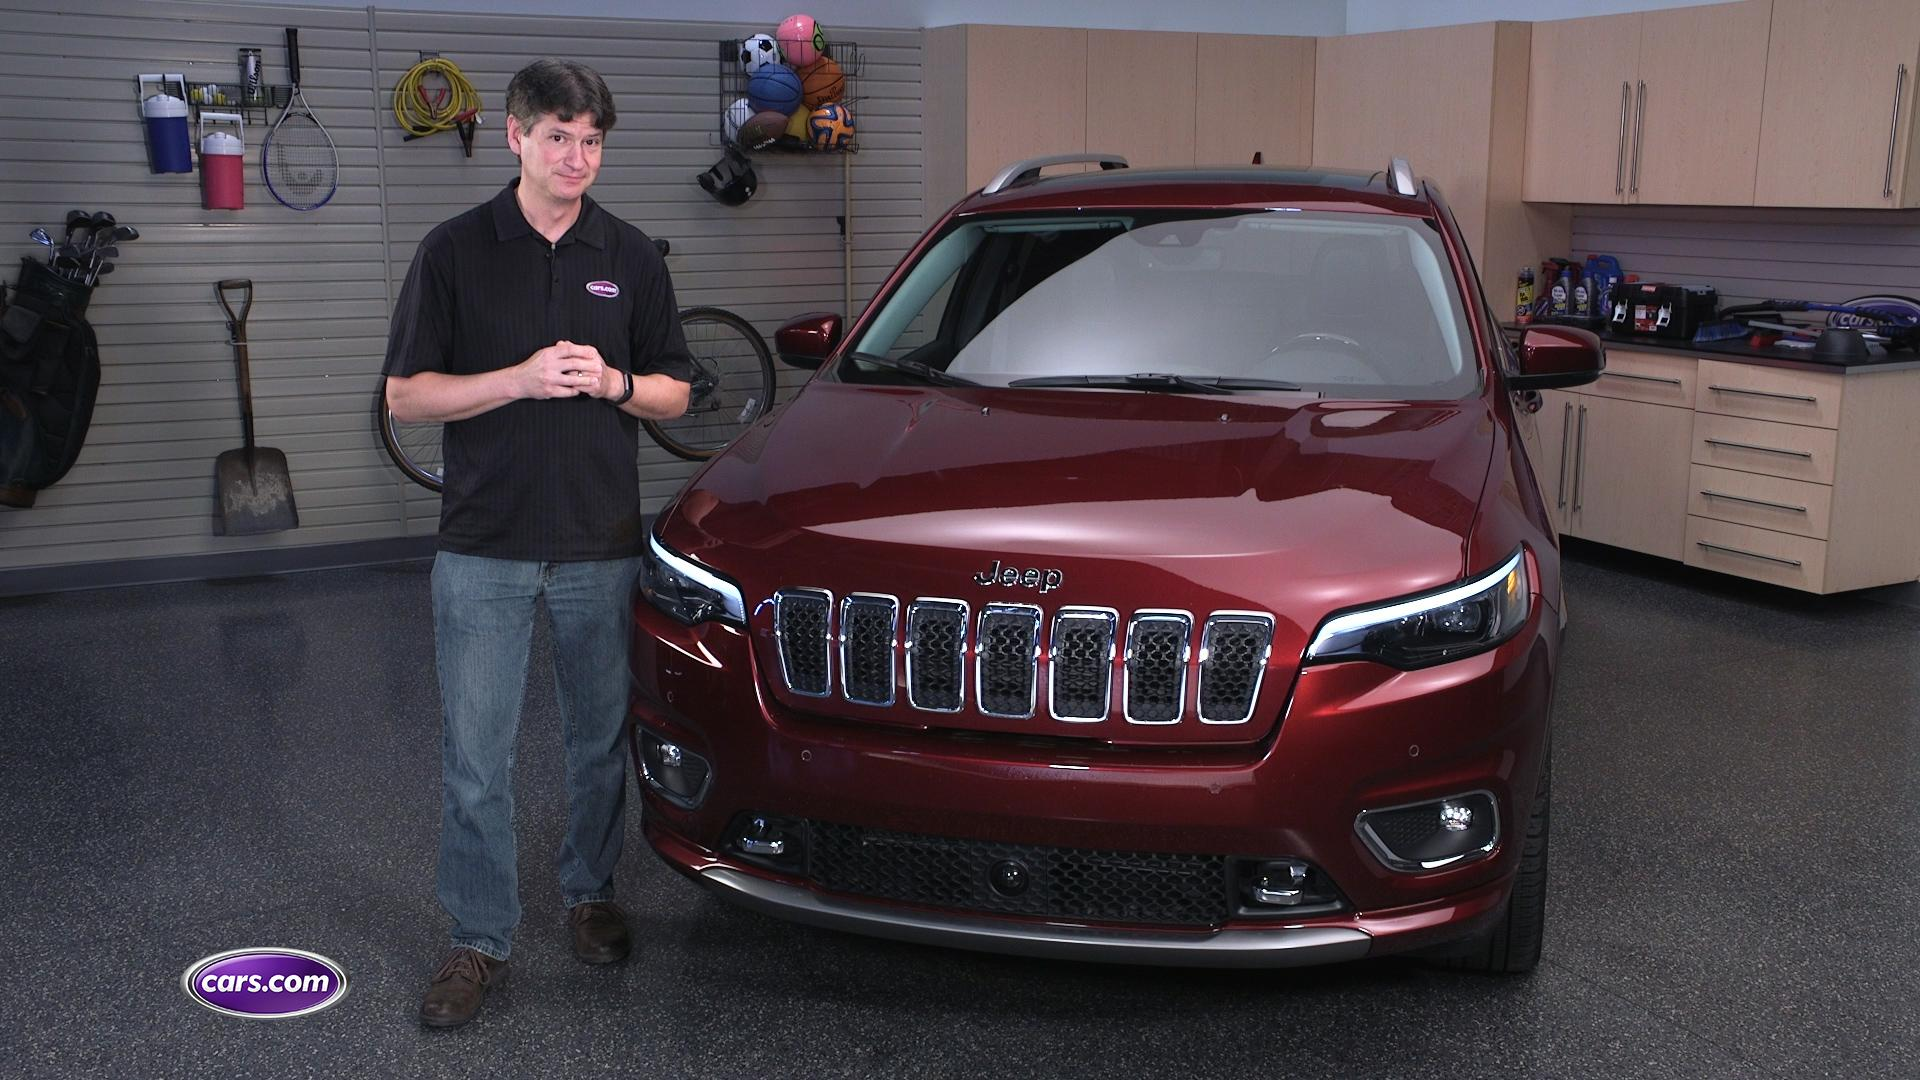 Video: 2019 Jeep Cherokee: Review